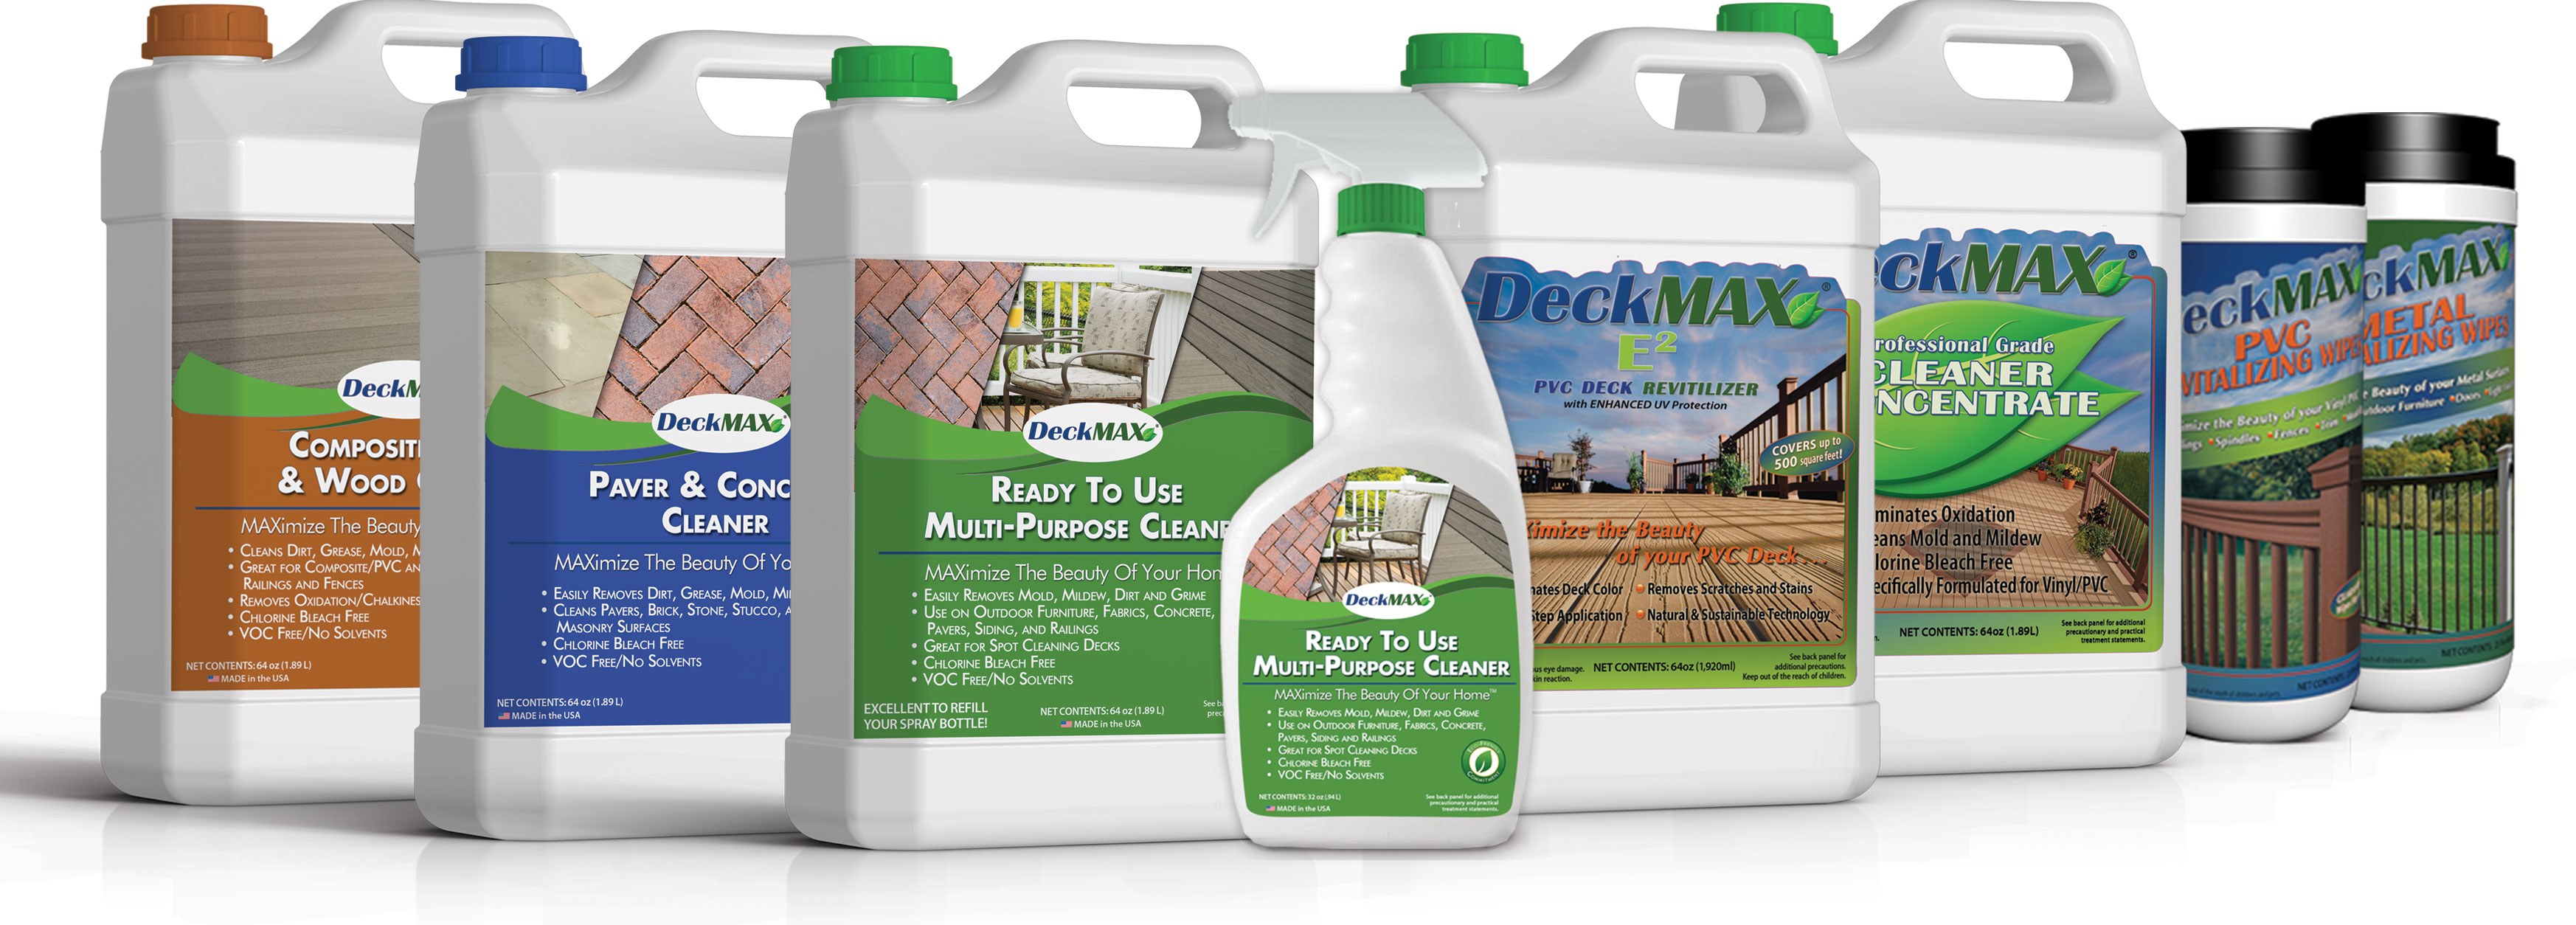 DeckMAX Family of Products